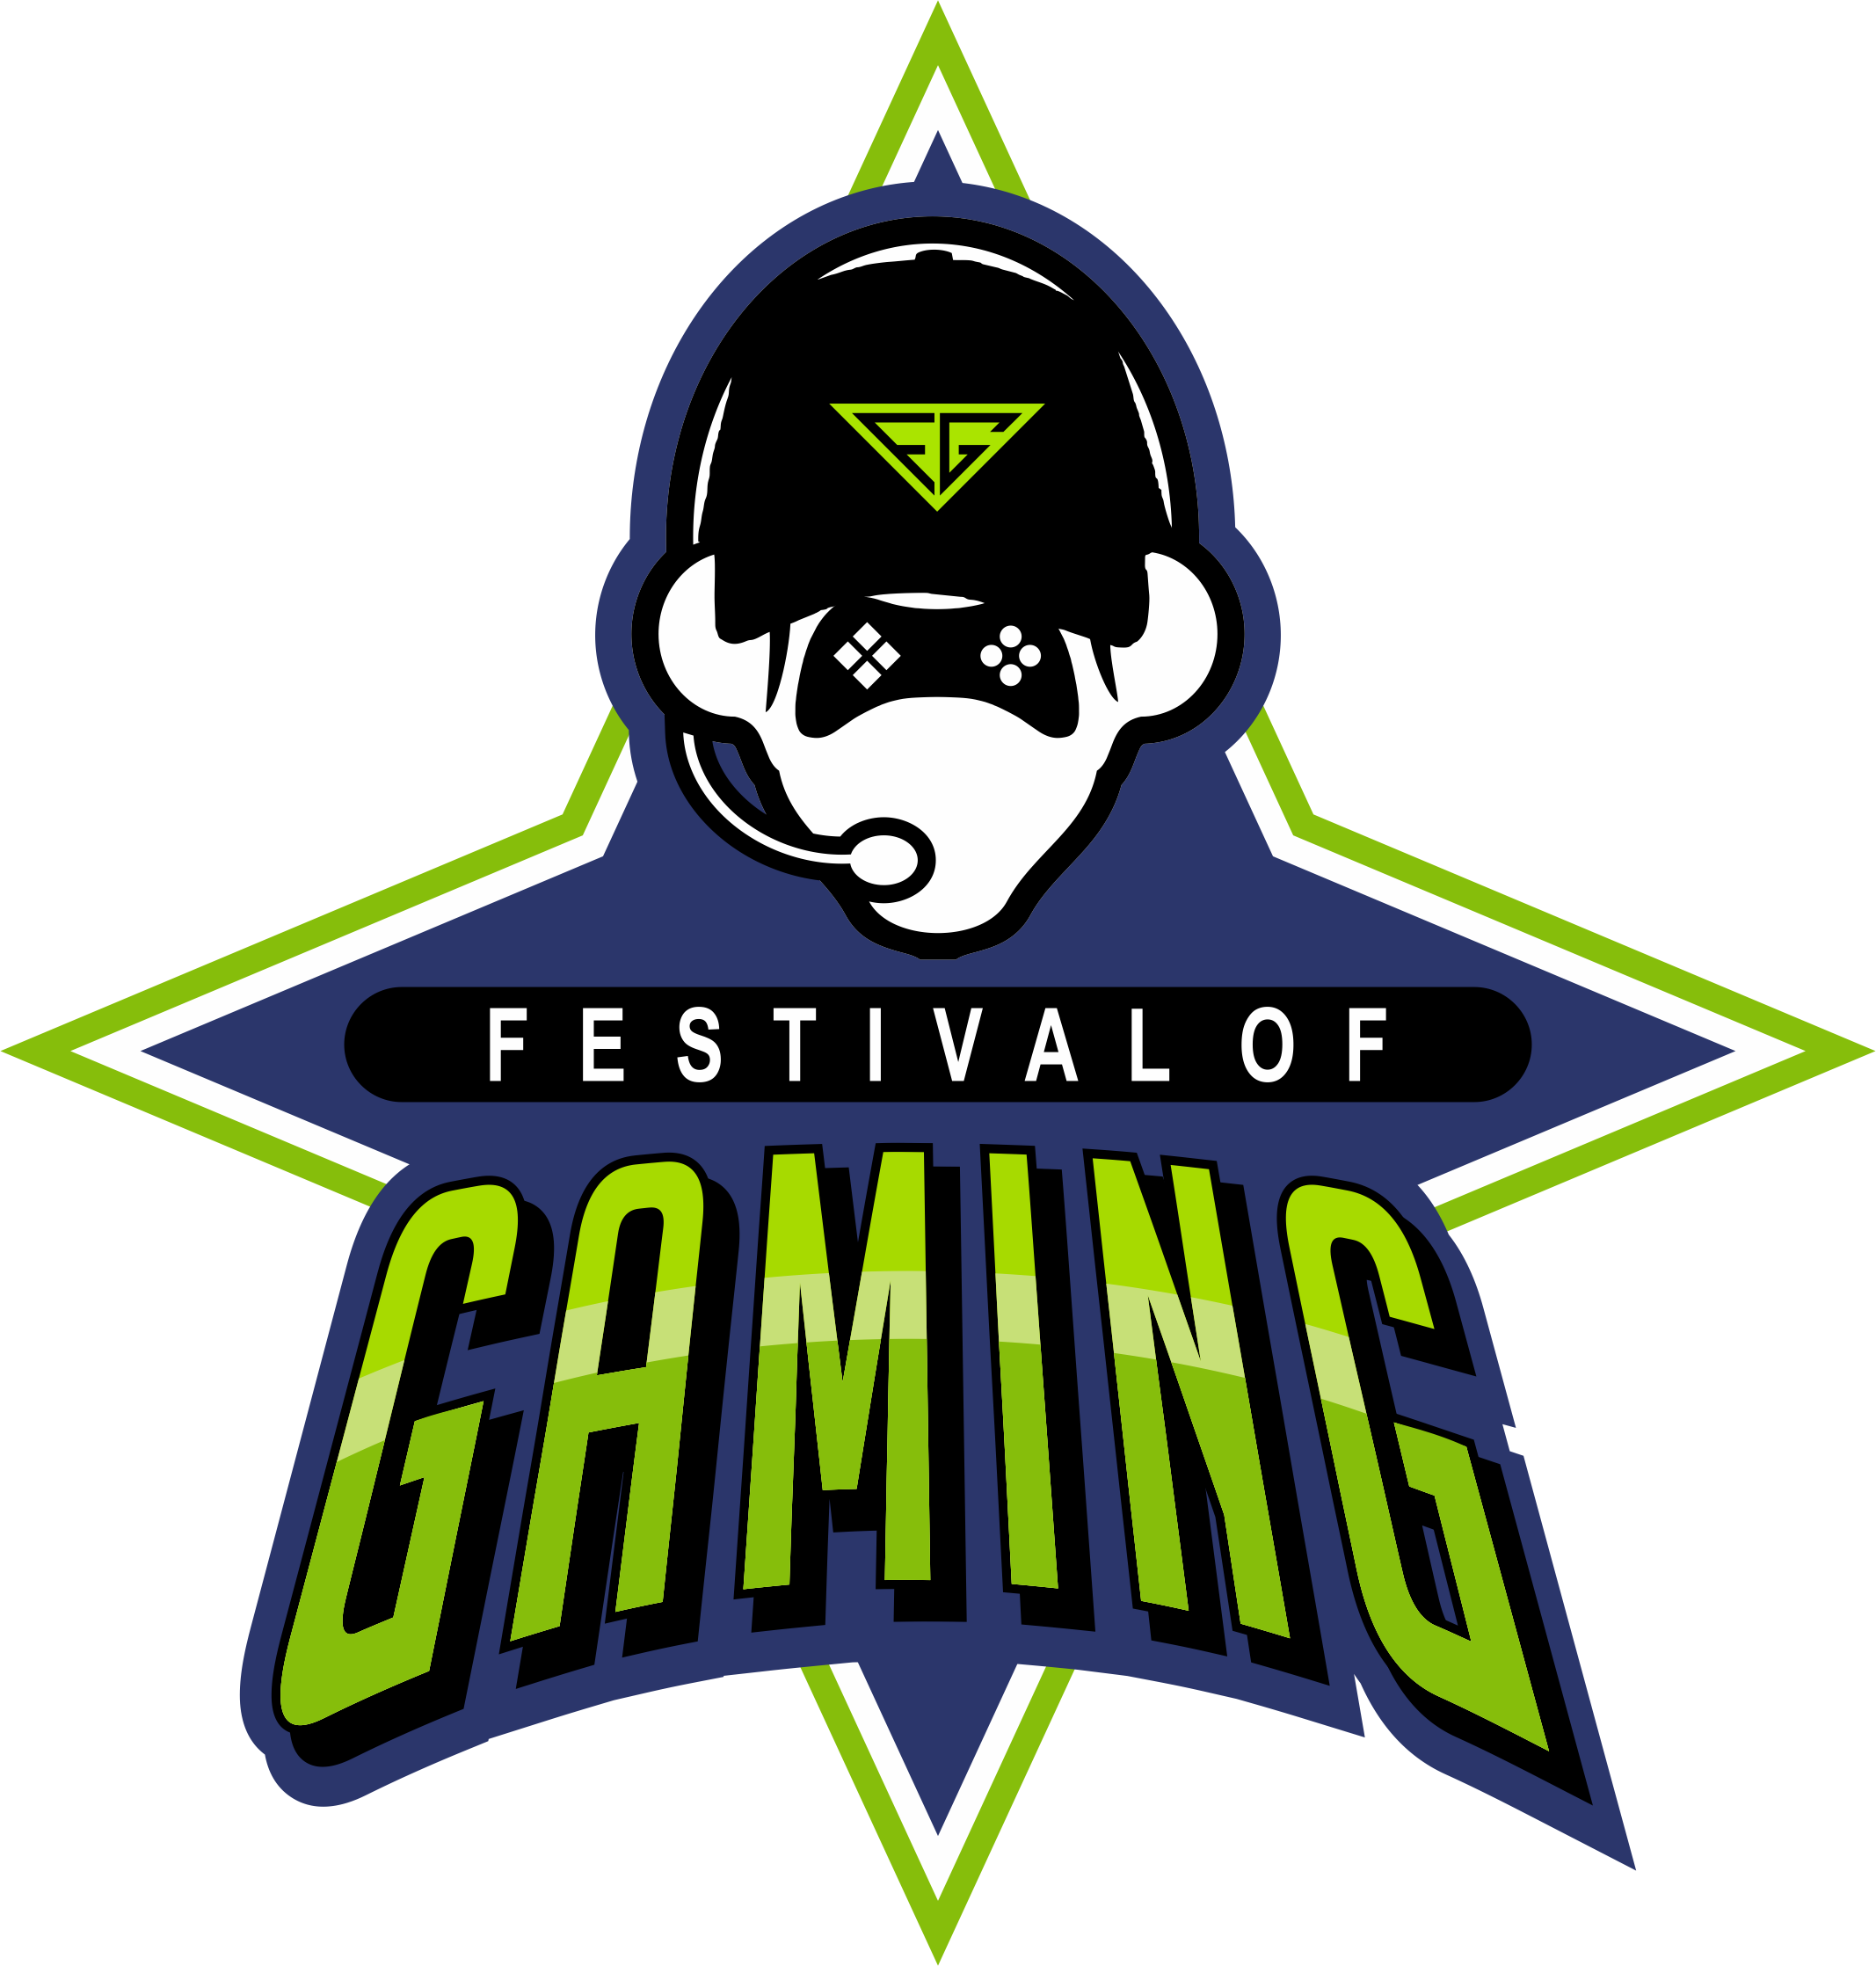 Festival of Gaming